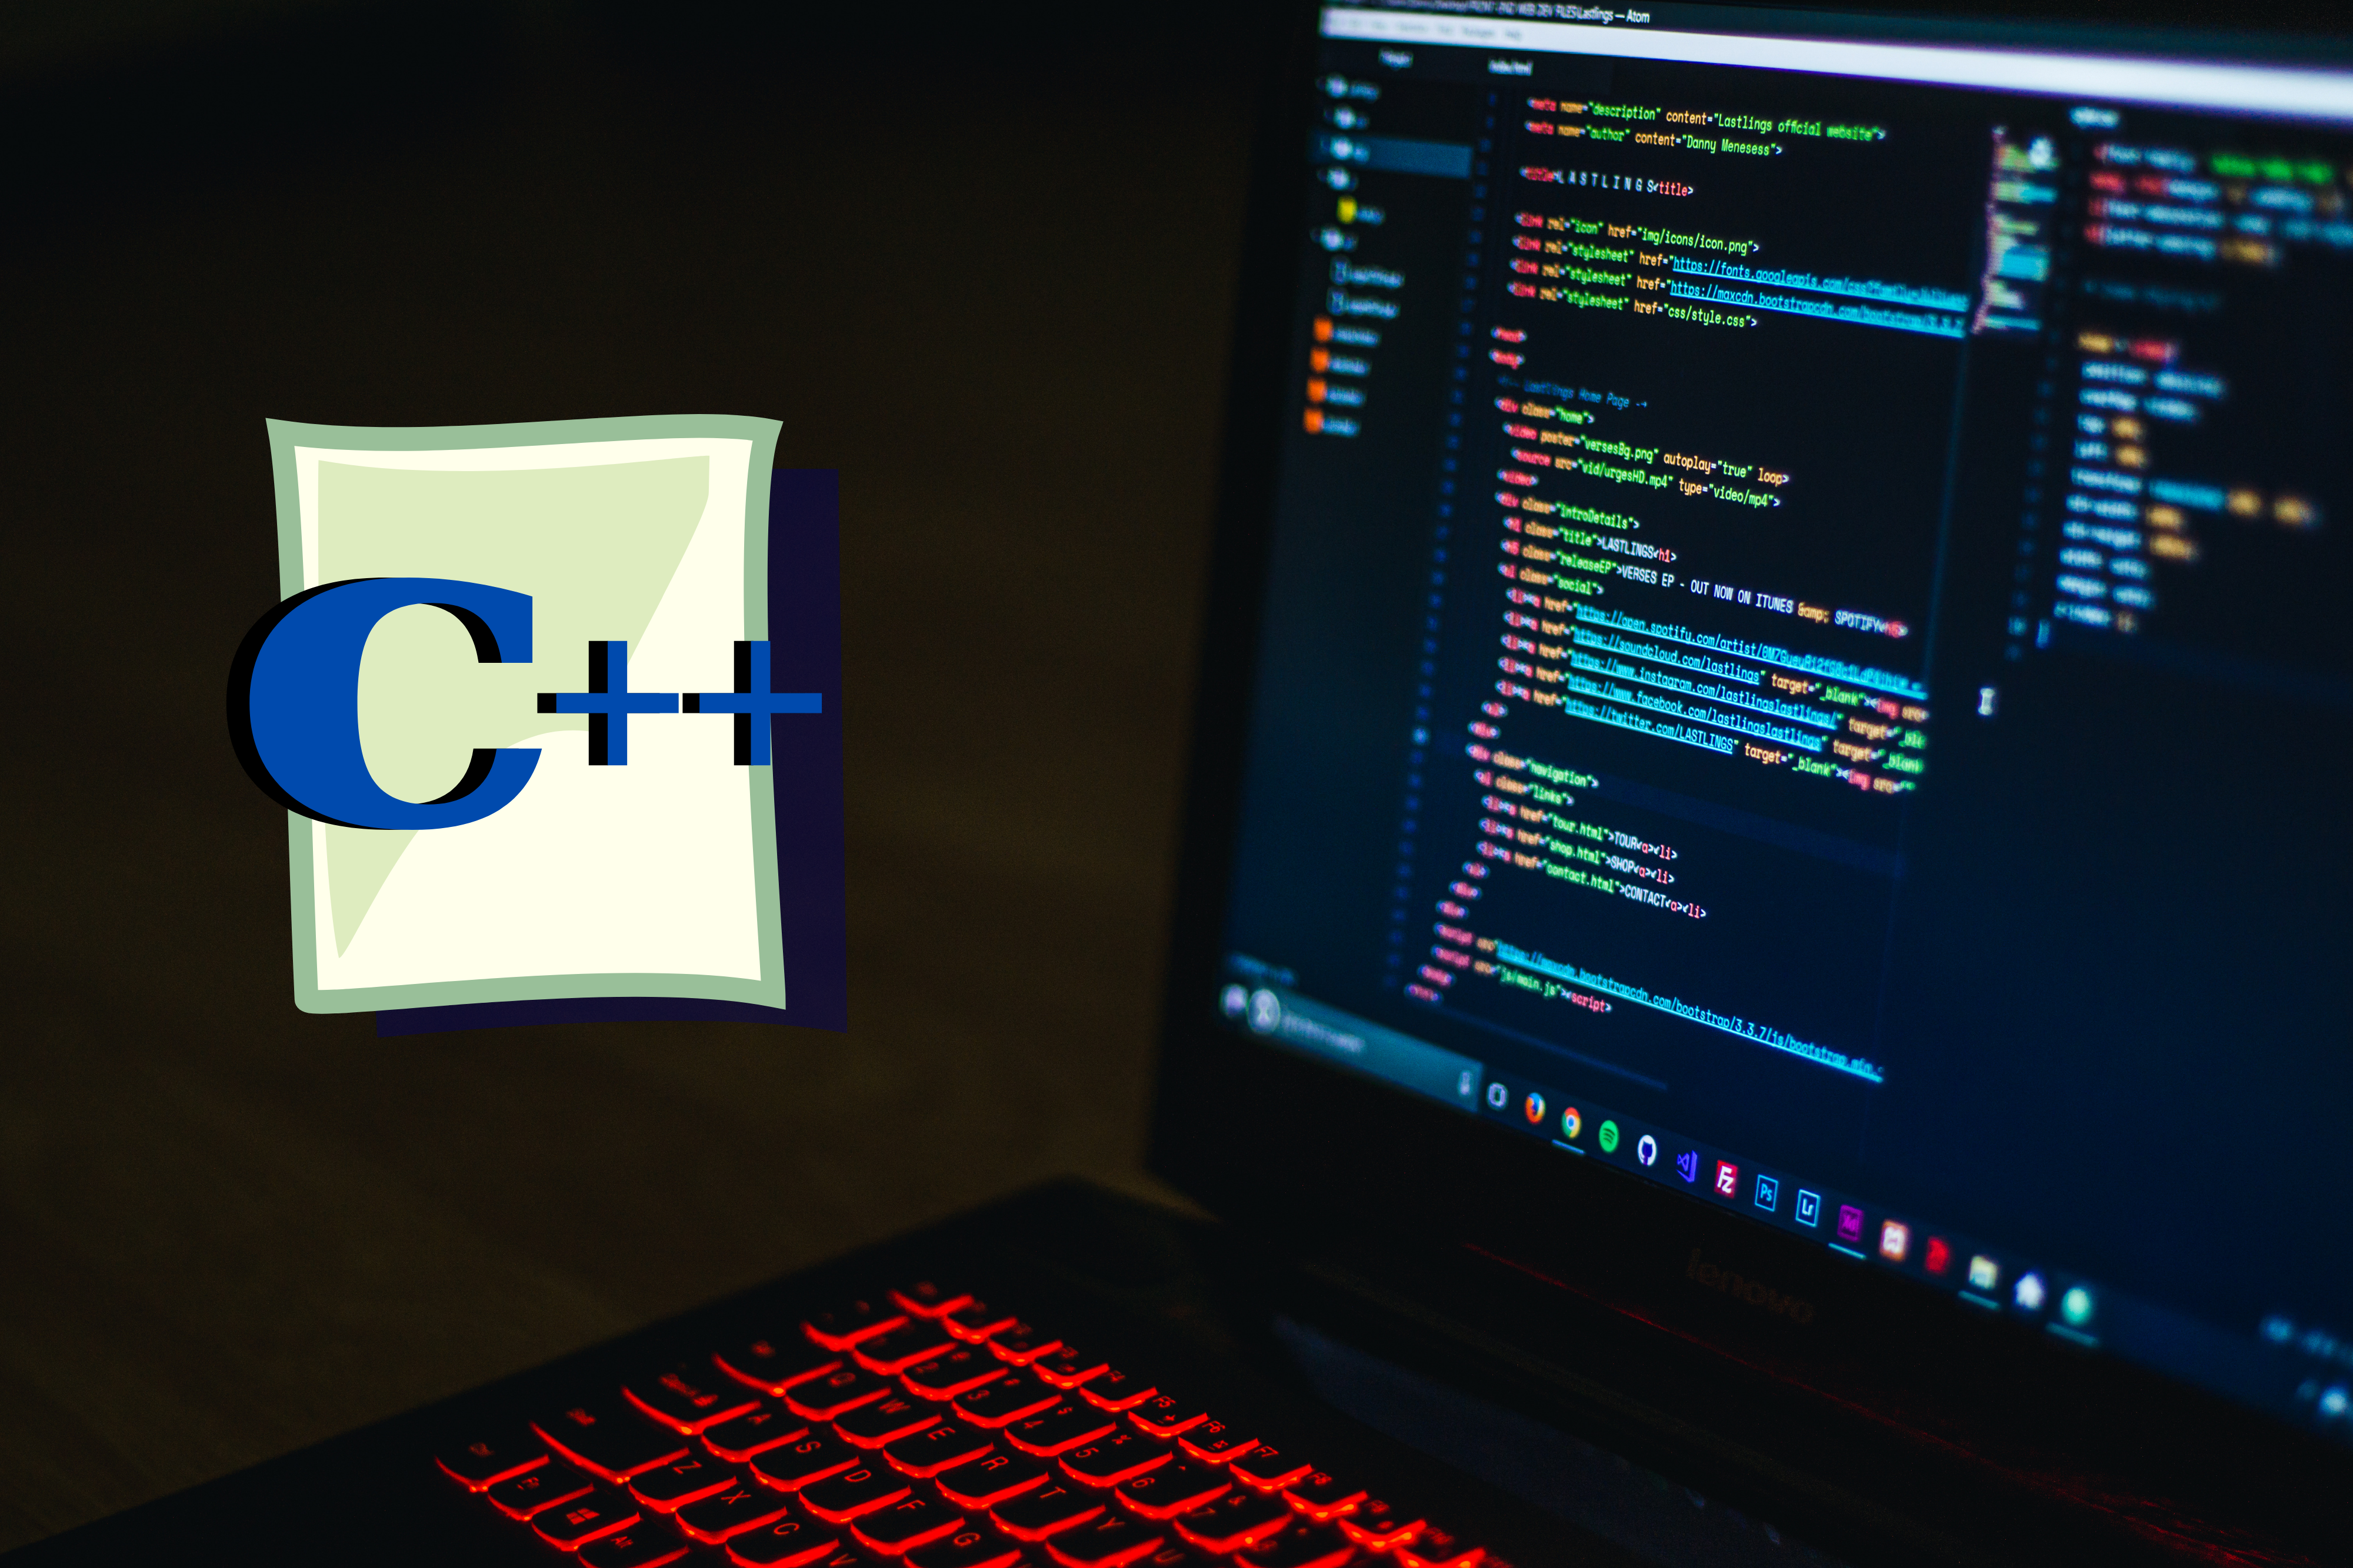 A laptop displays lines of codes with a c++ logo to its left.